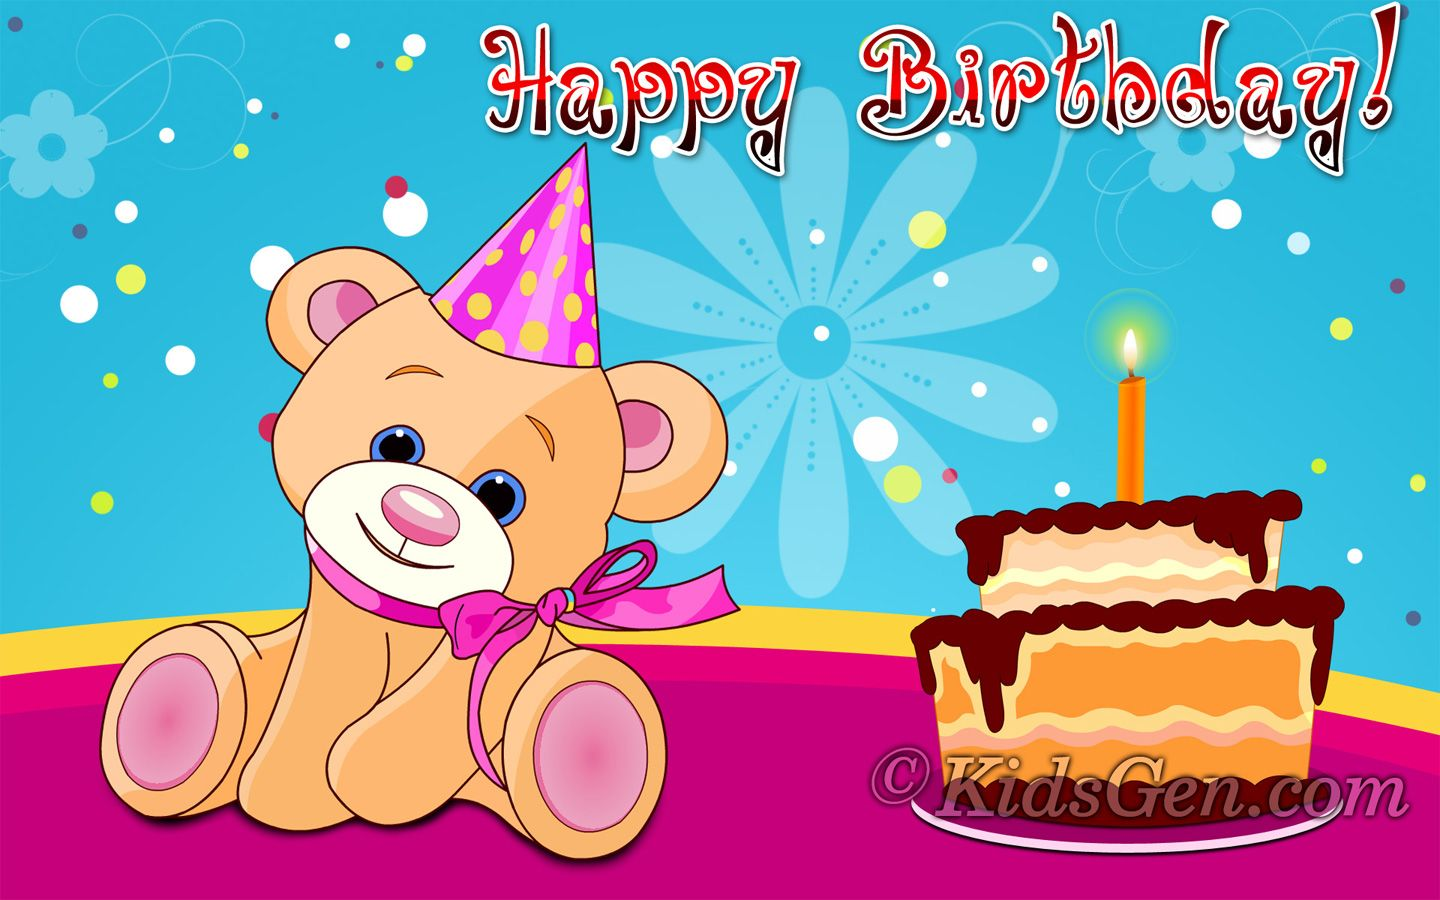 Image Result For Happy Birthday Hd Wallpaper 1920x1080 Png Happy